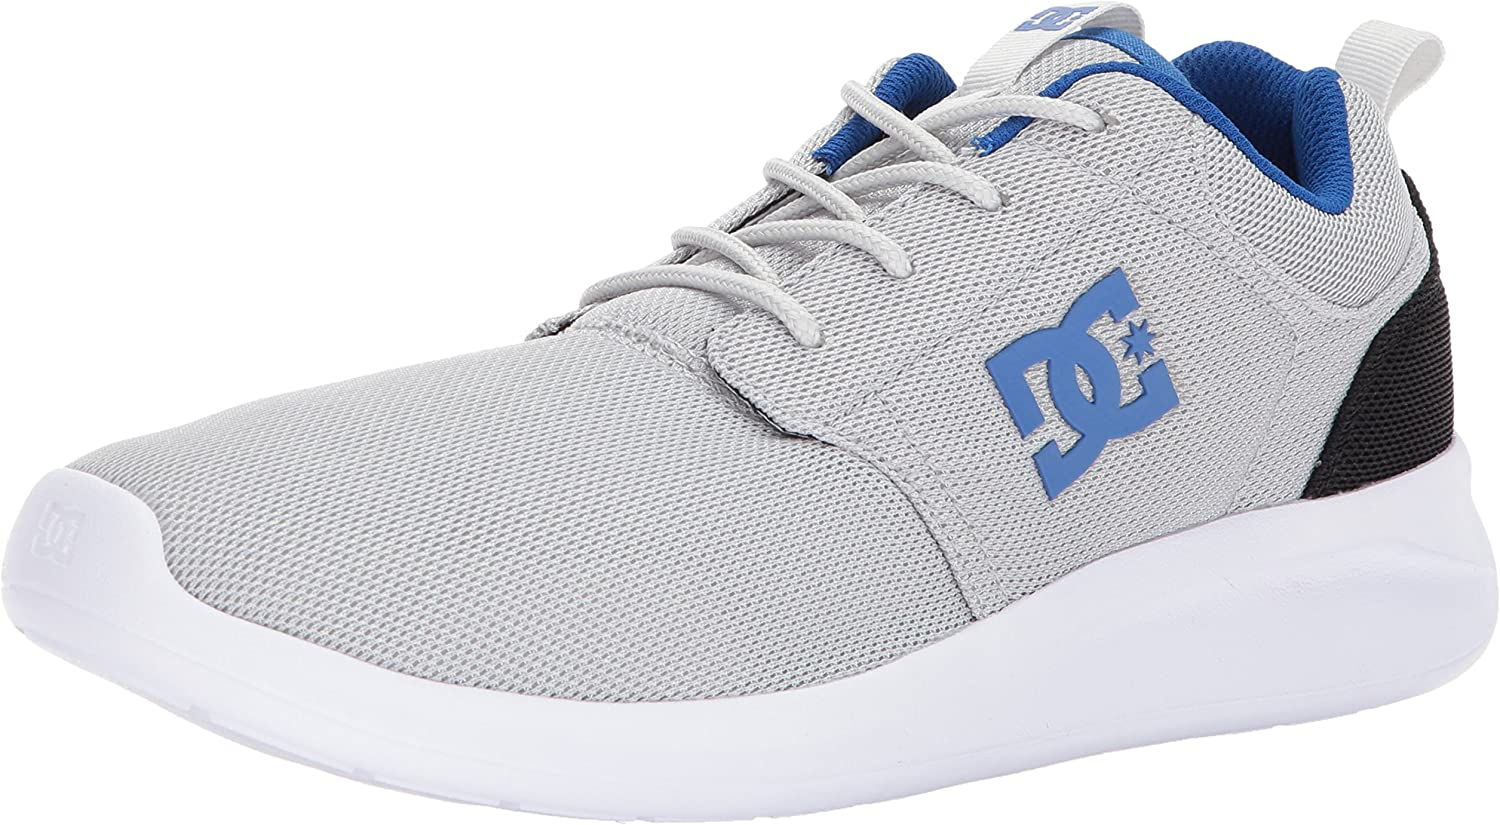 Dc - Mens Midway Lowtop shoes